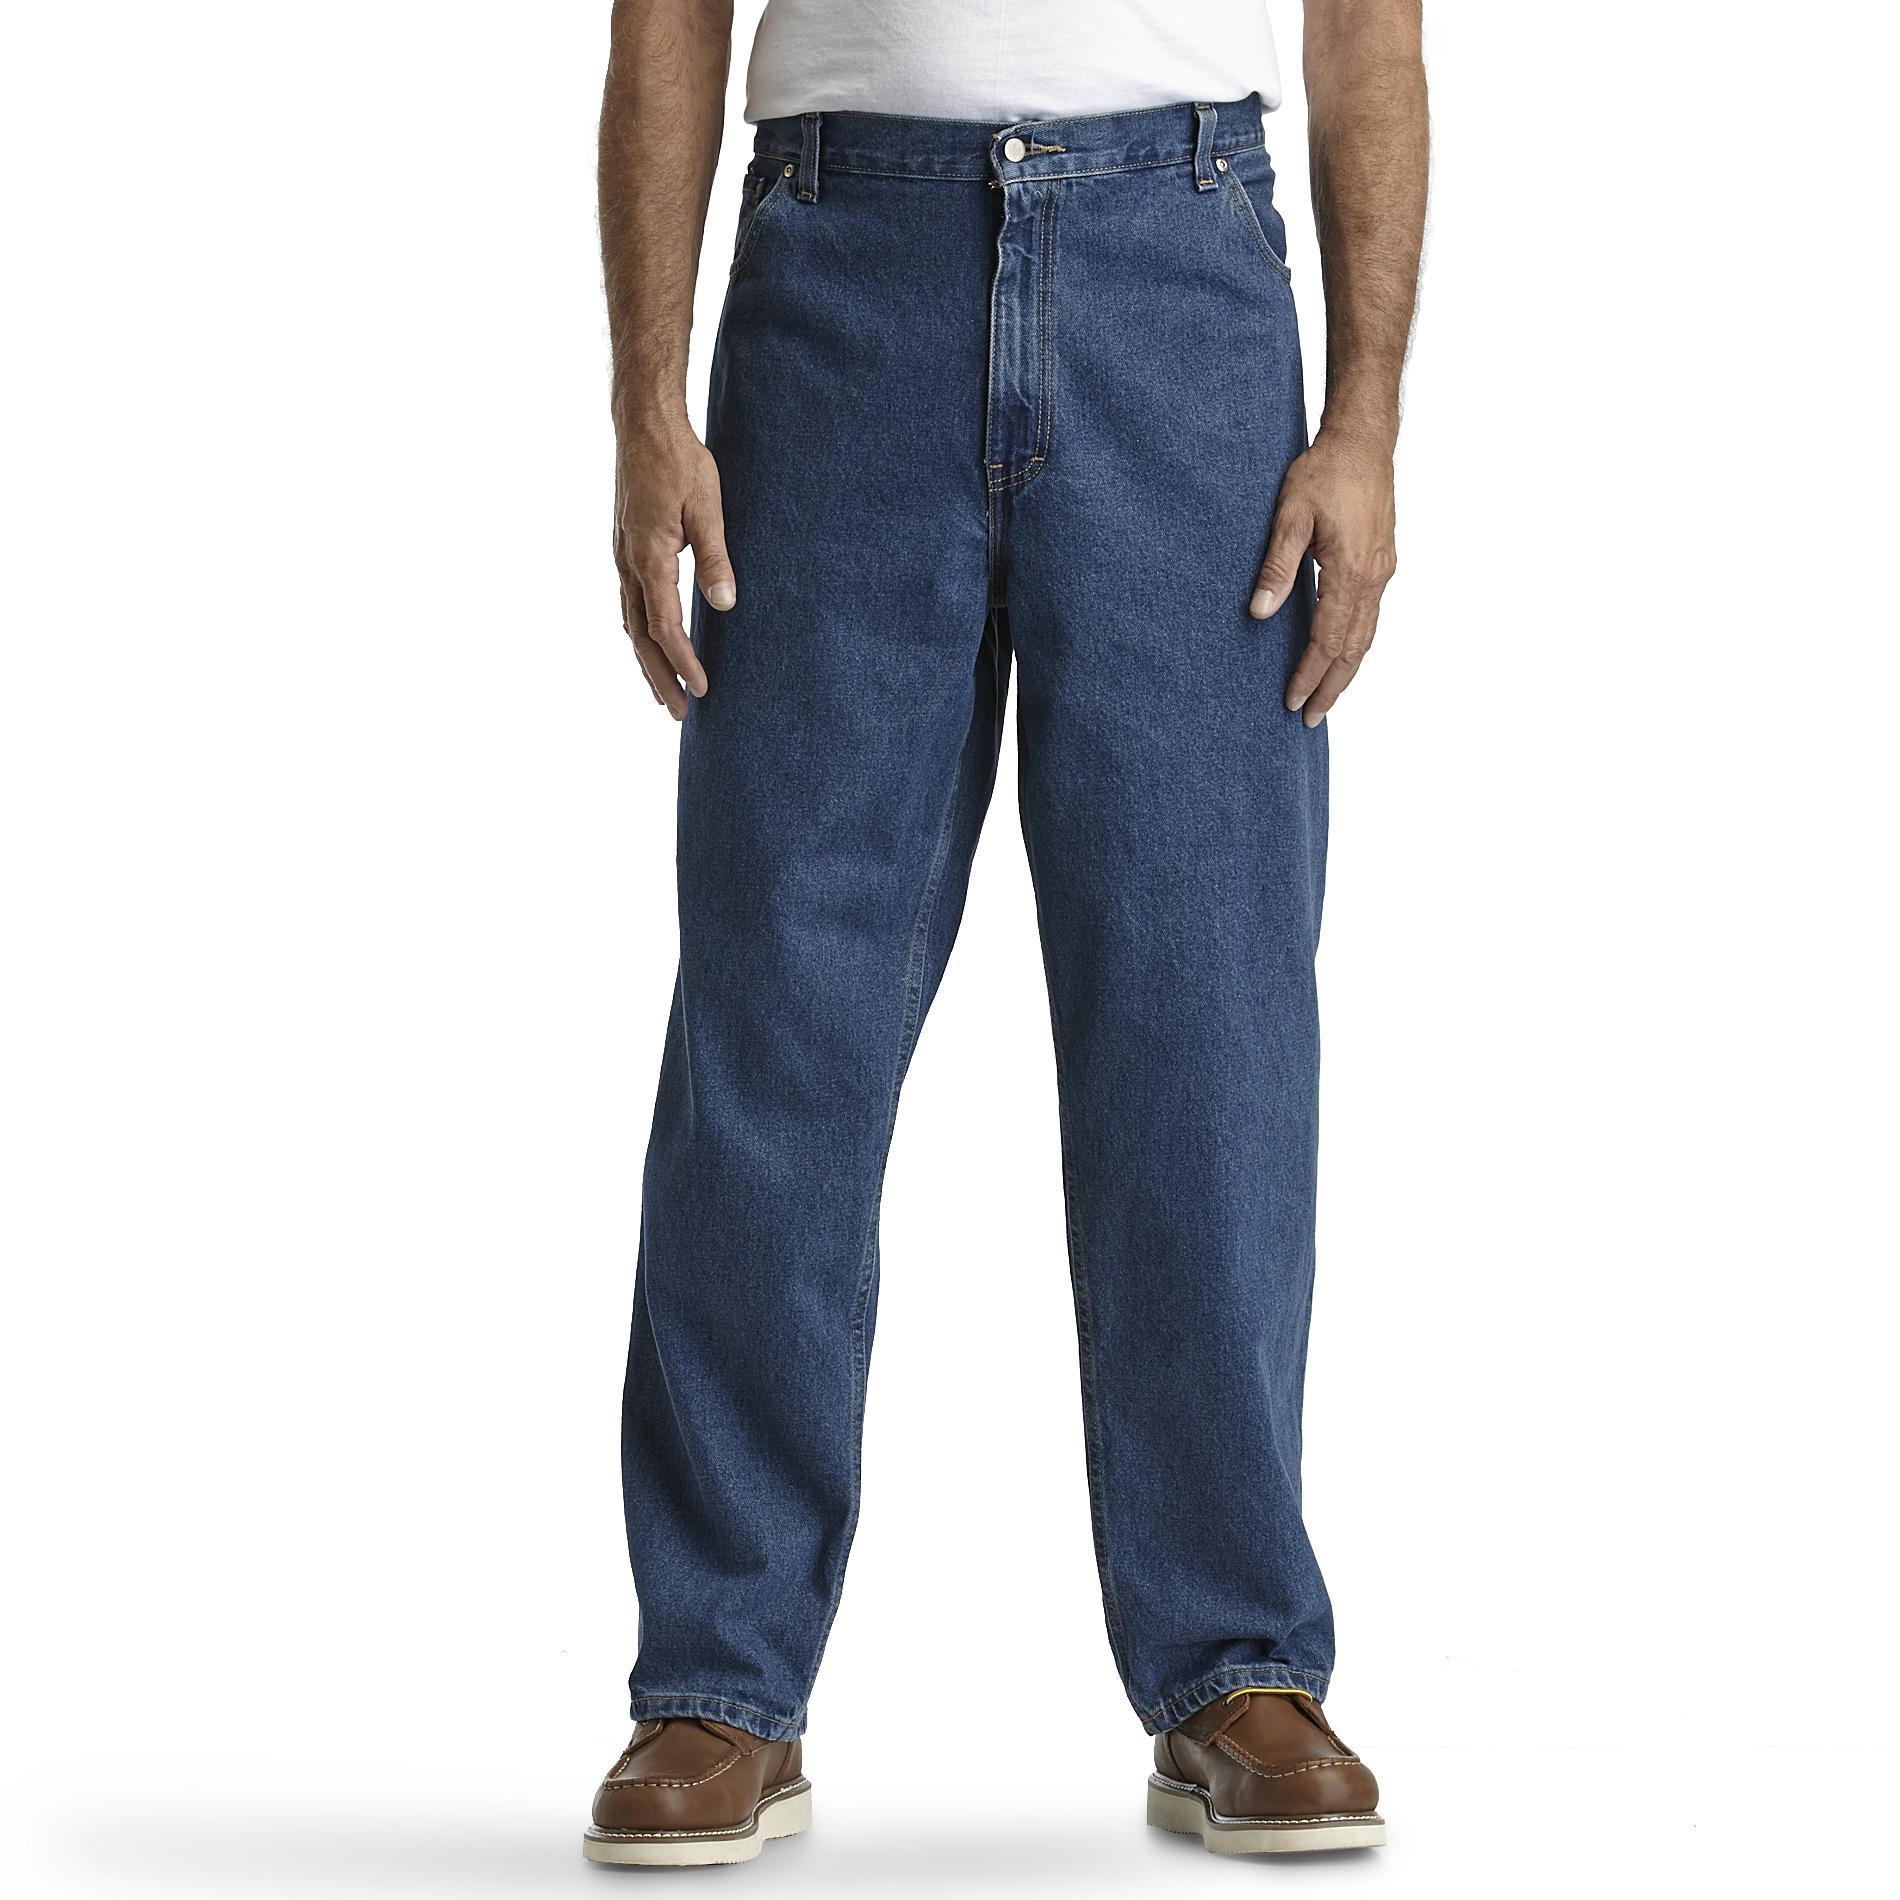 Basic Editions  Men's Relaxed Fit Denim